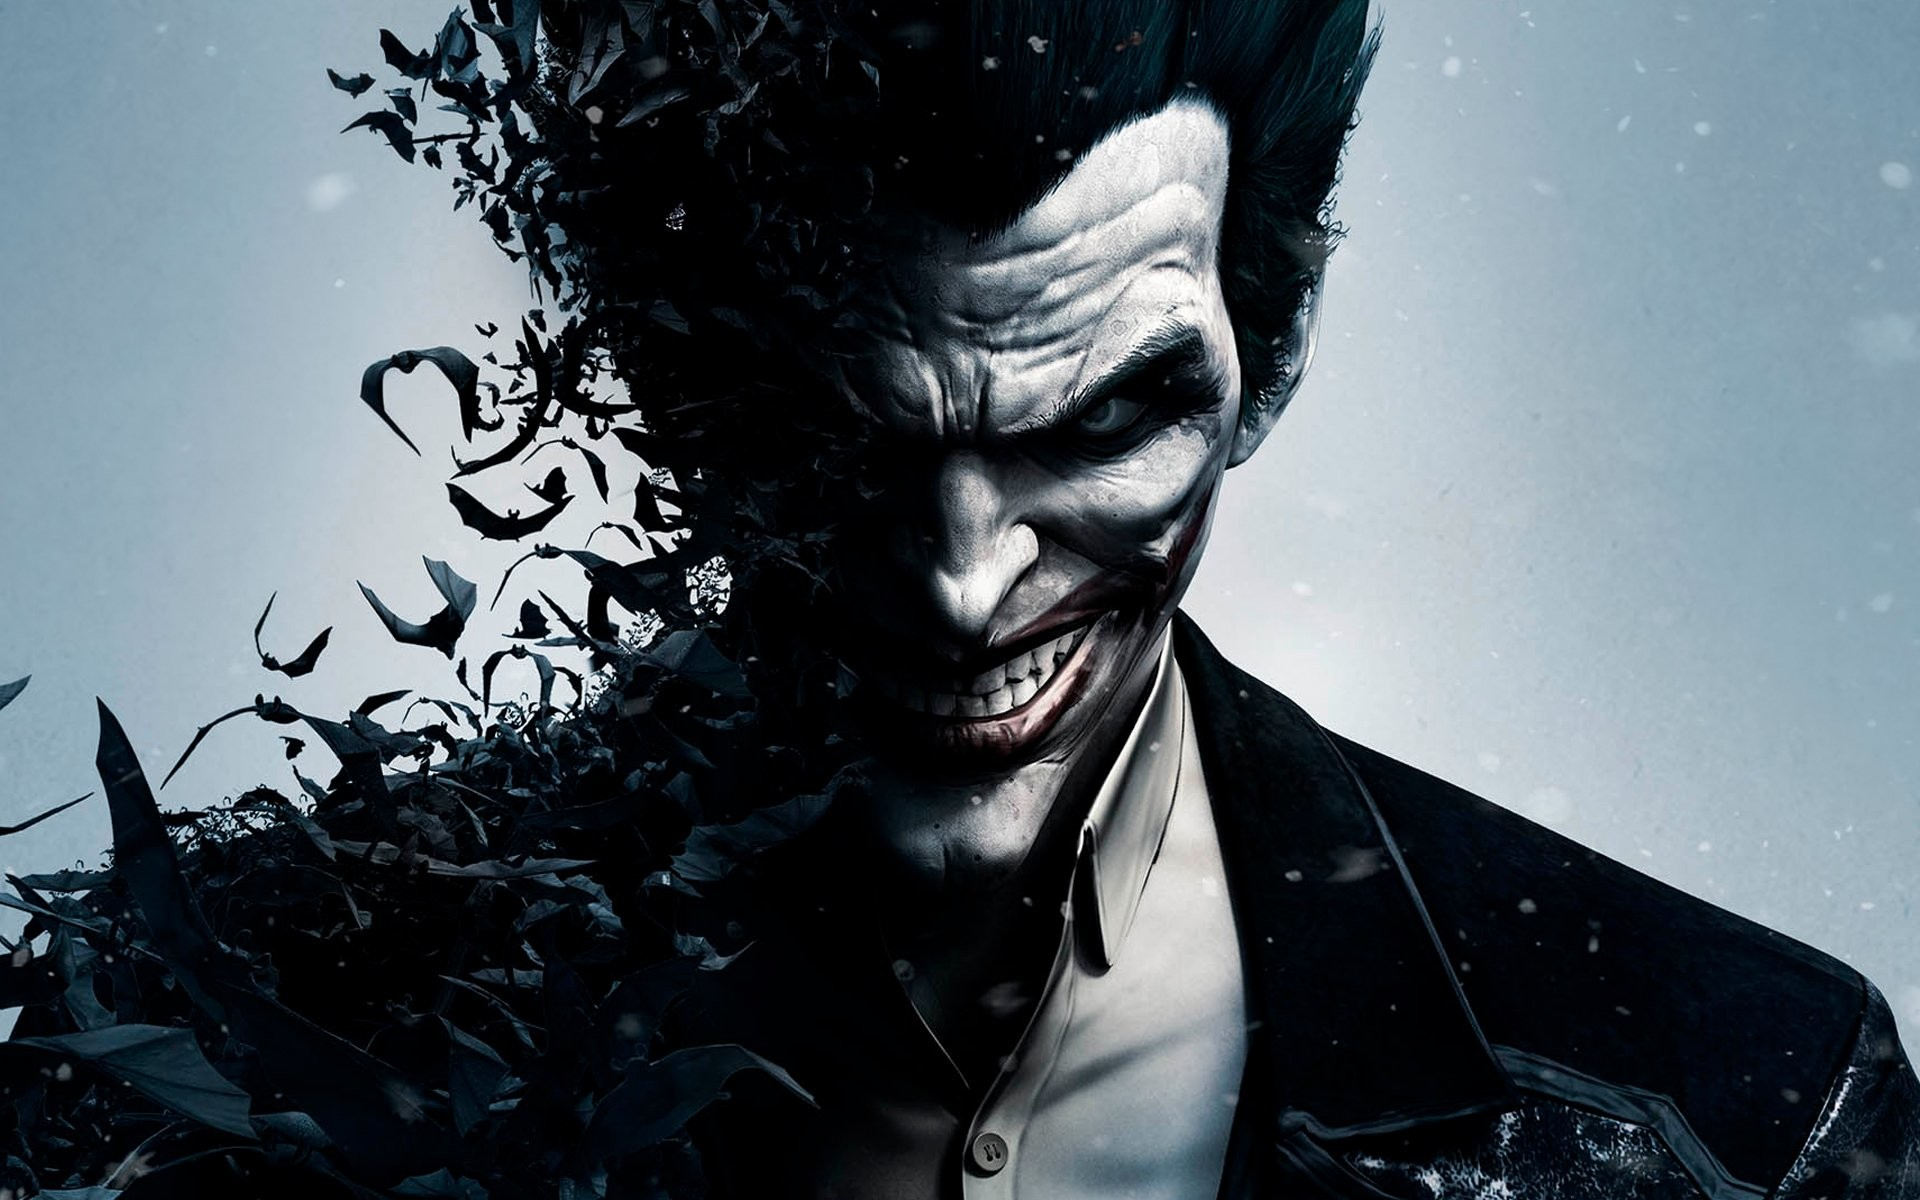 The Joker Hd Wallpaper 67 Images